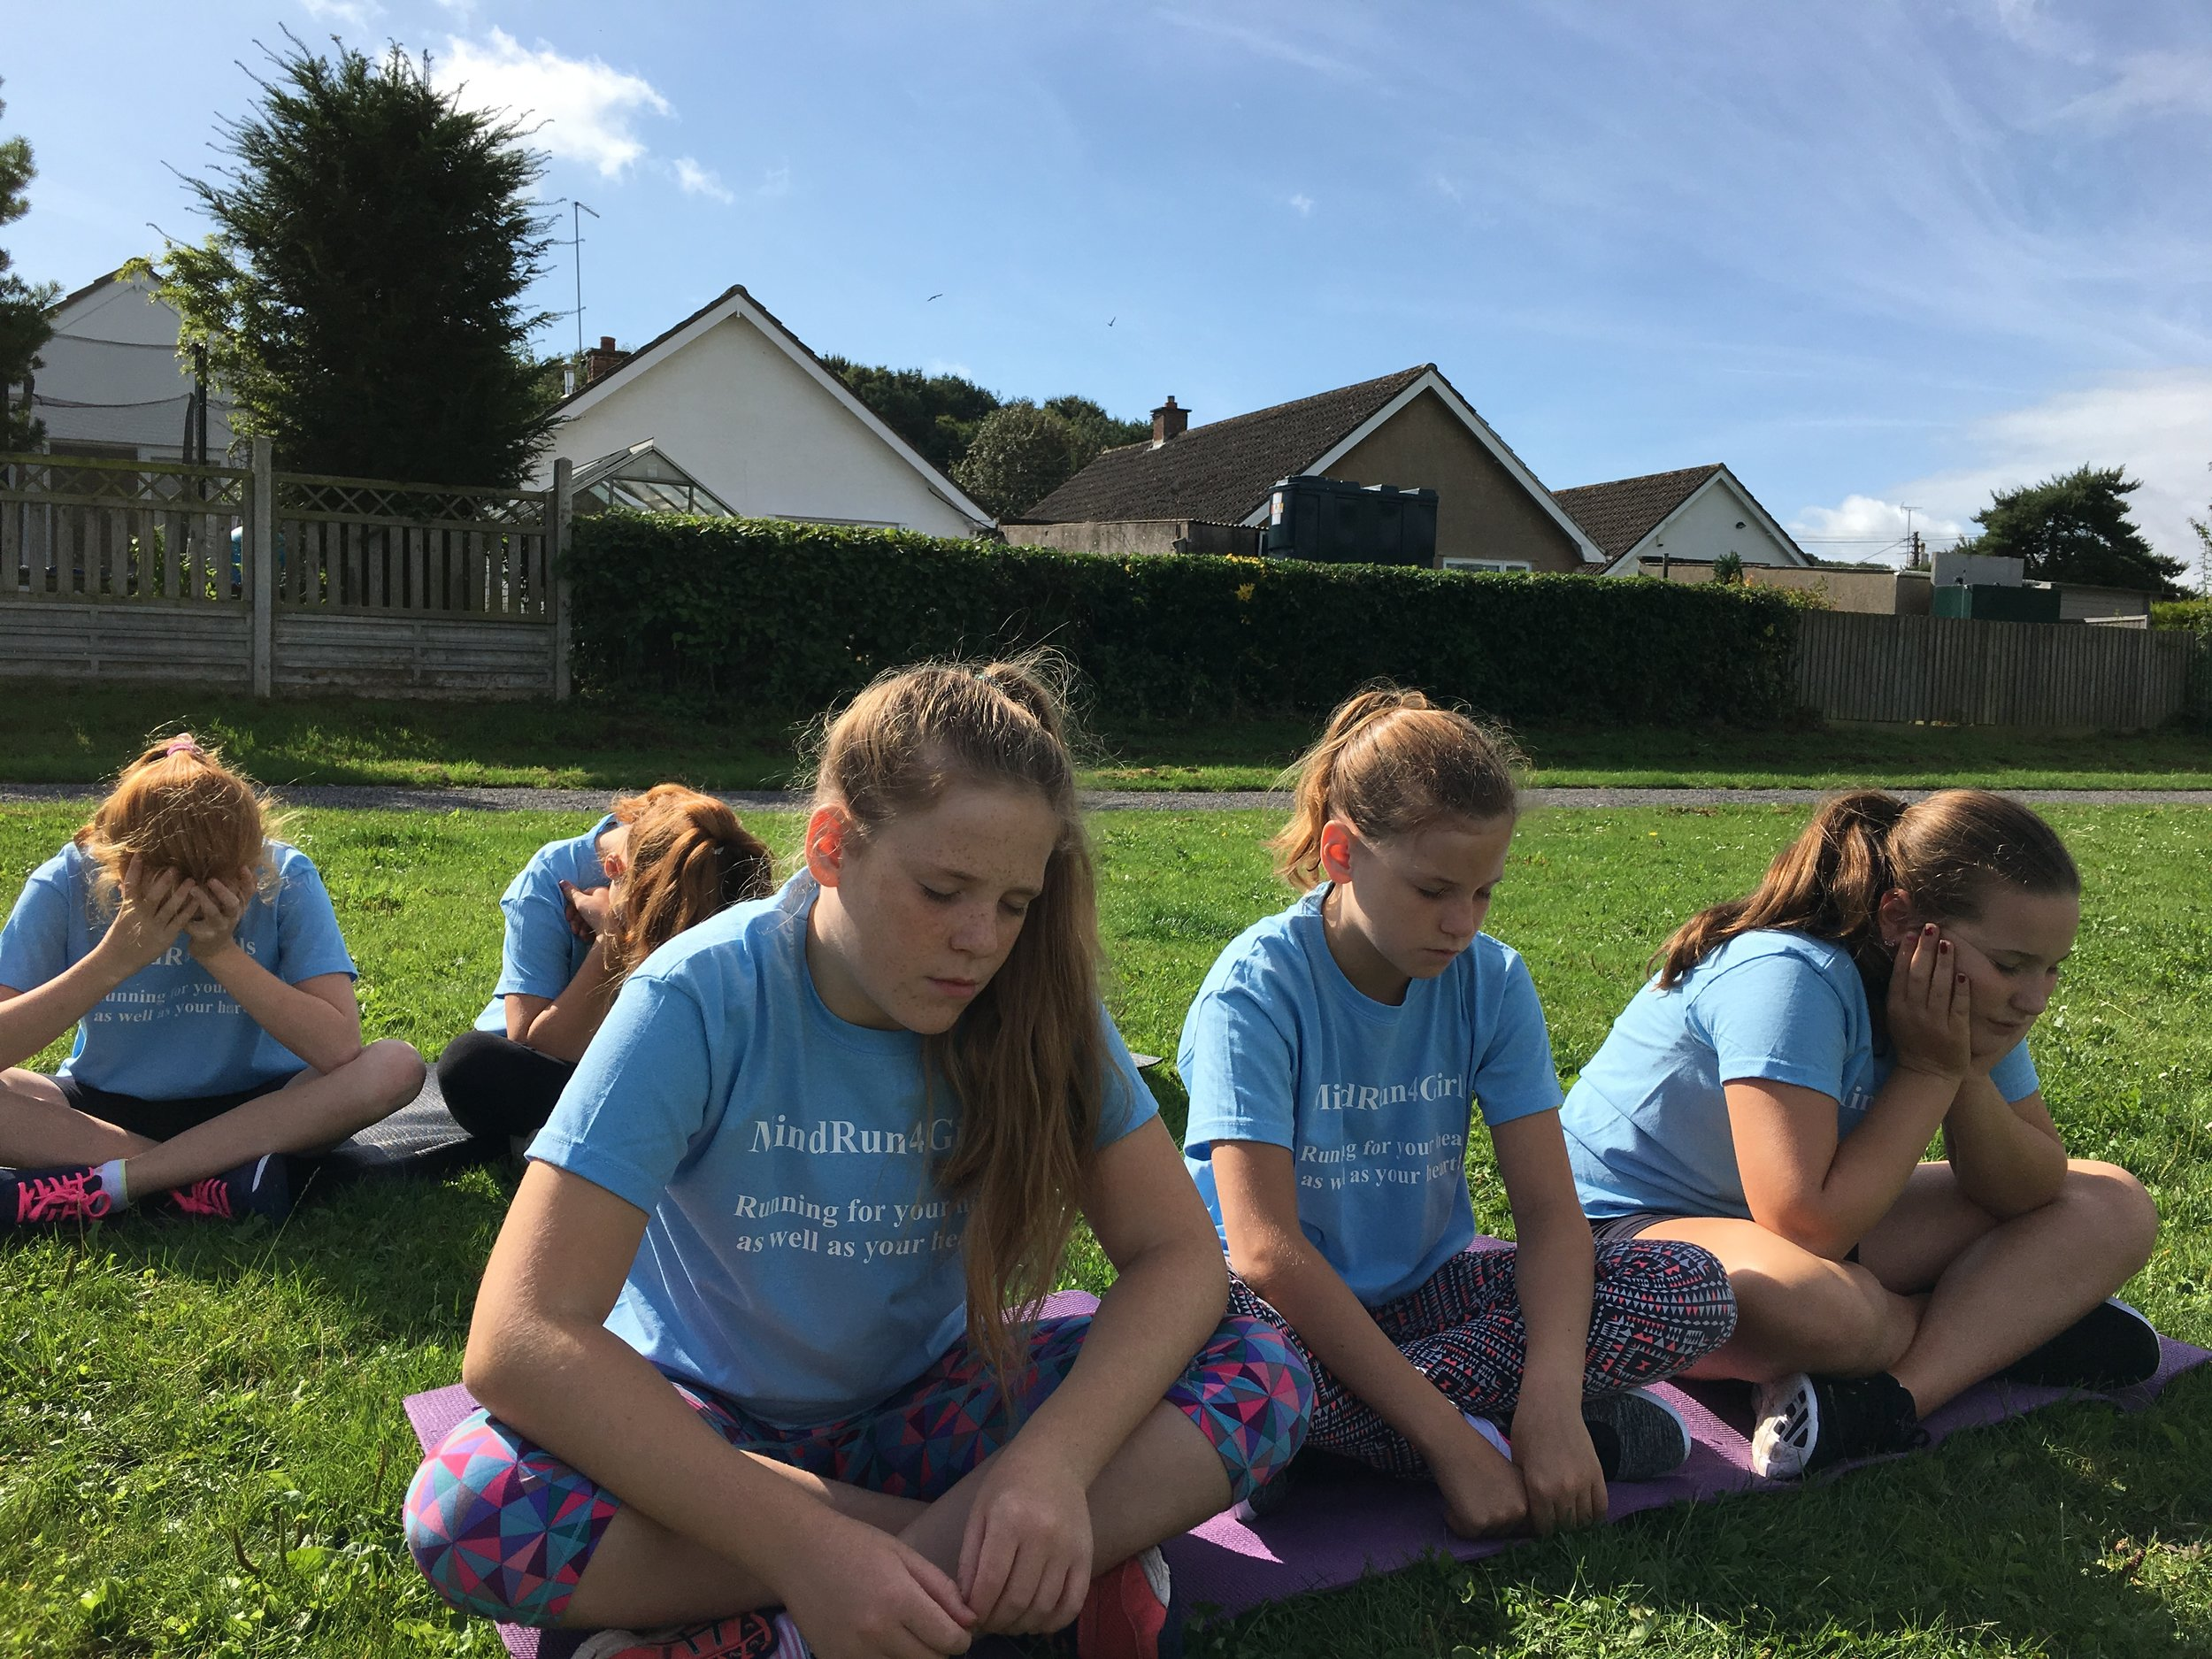 Our Mission - Our Mission is to empower all girls (aged 9-13), regardless of background or fitness level, to run for their heads as well as their hearts (well-being as well as physical benefits) and to share life skills with simple mindfulness and breathing techniques that can be applied to any aspect of their lives.